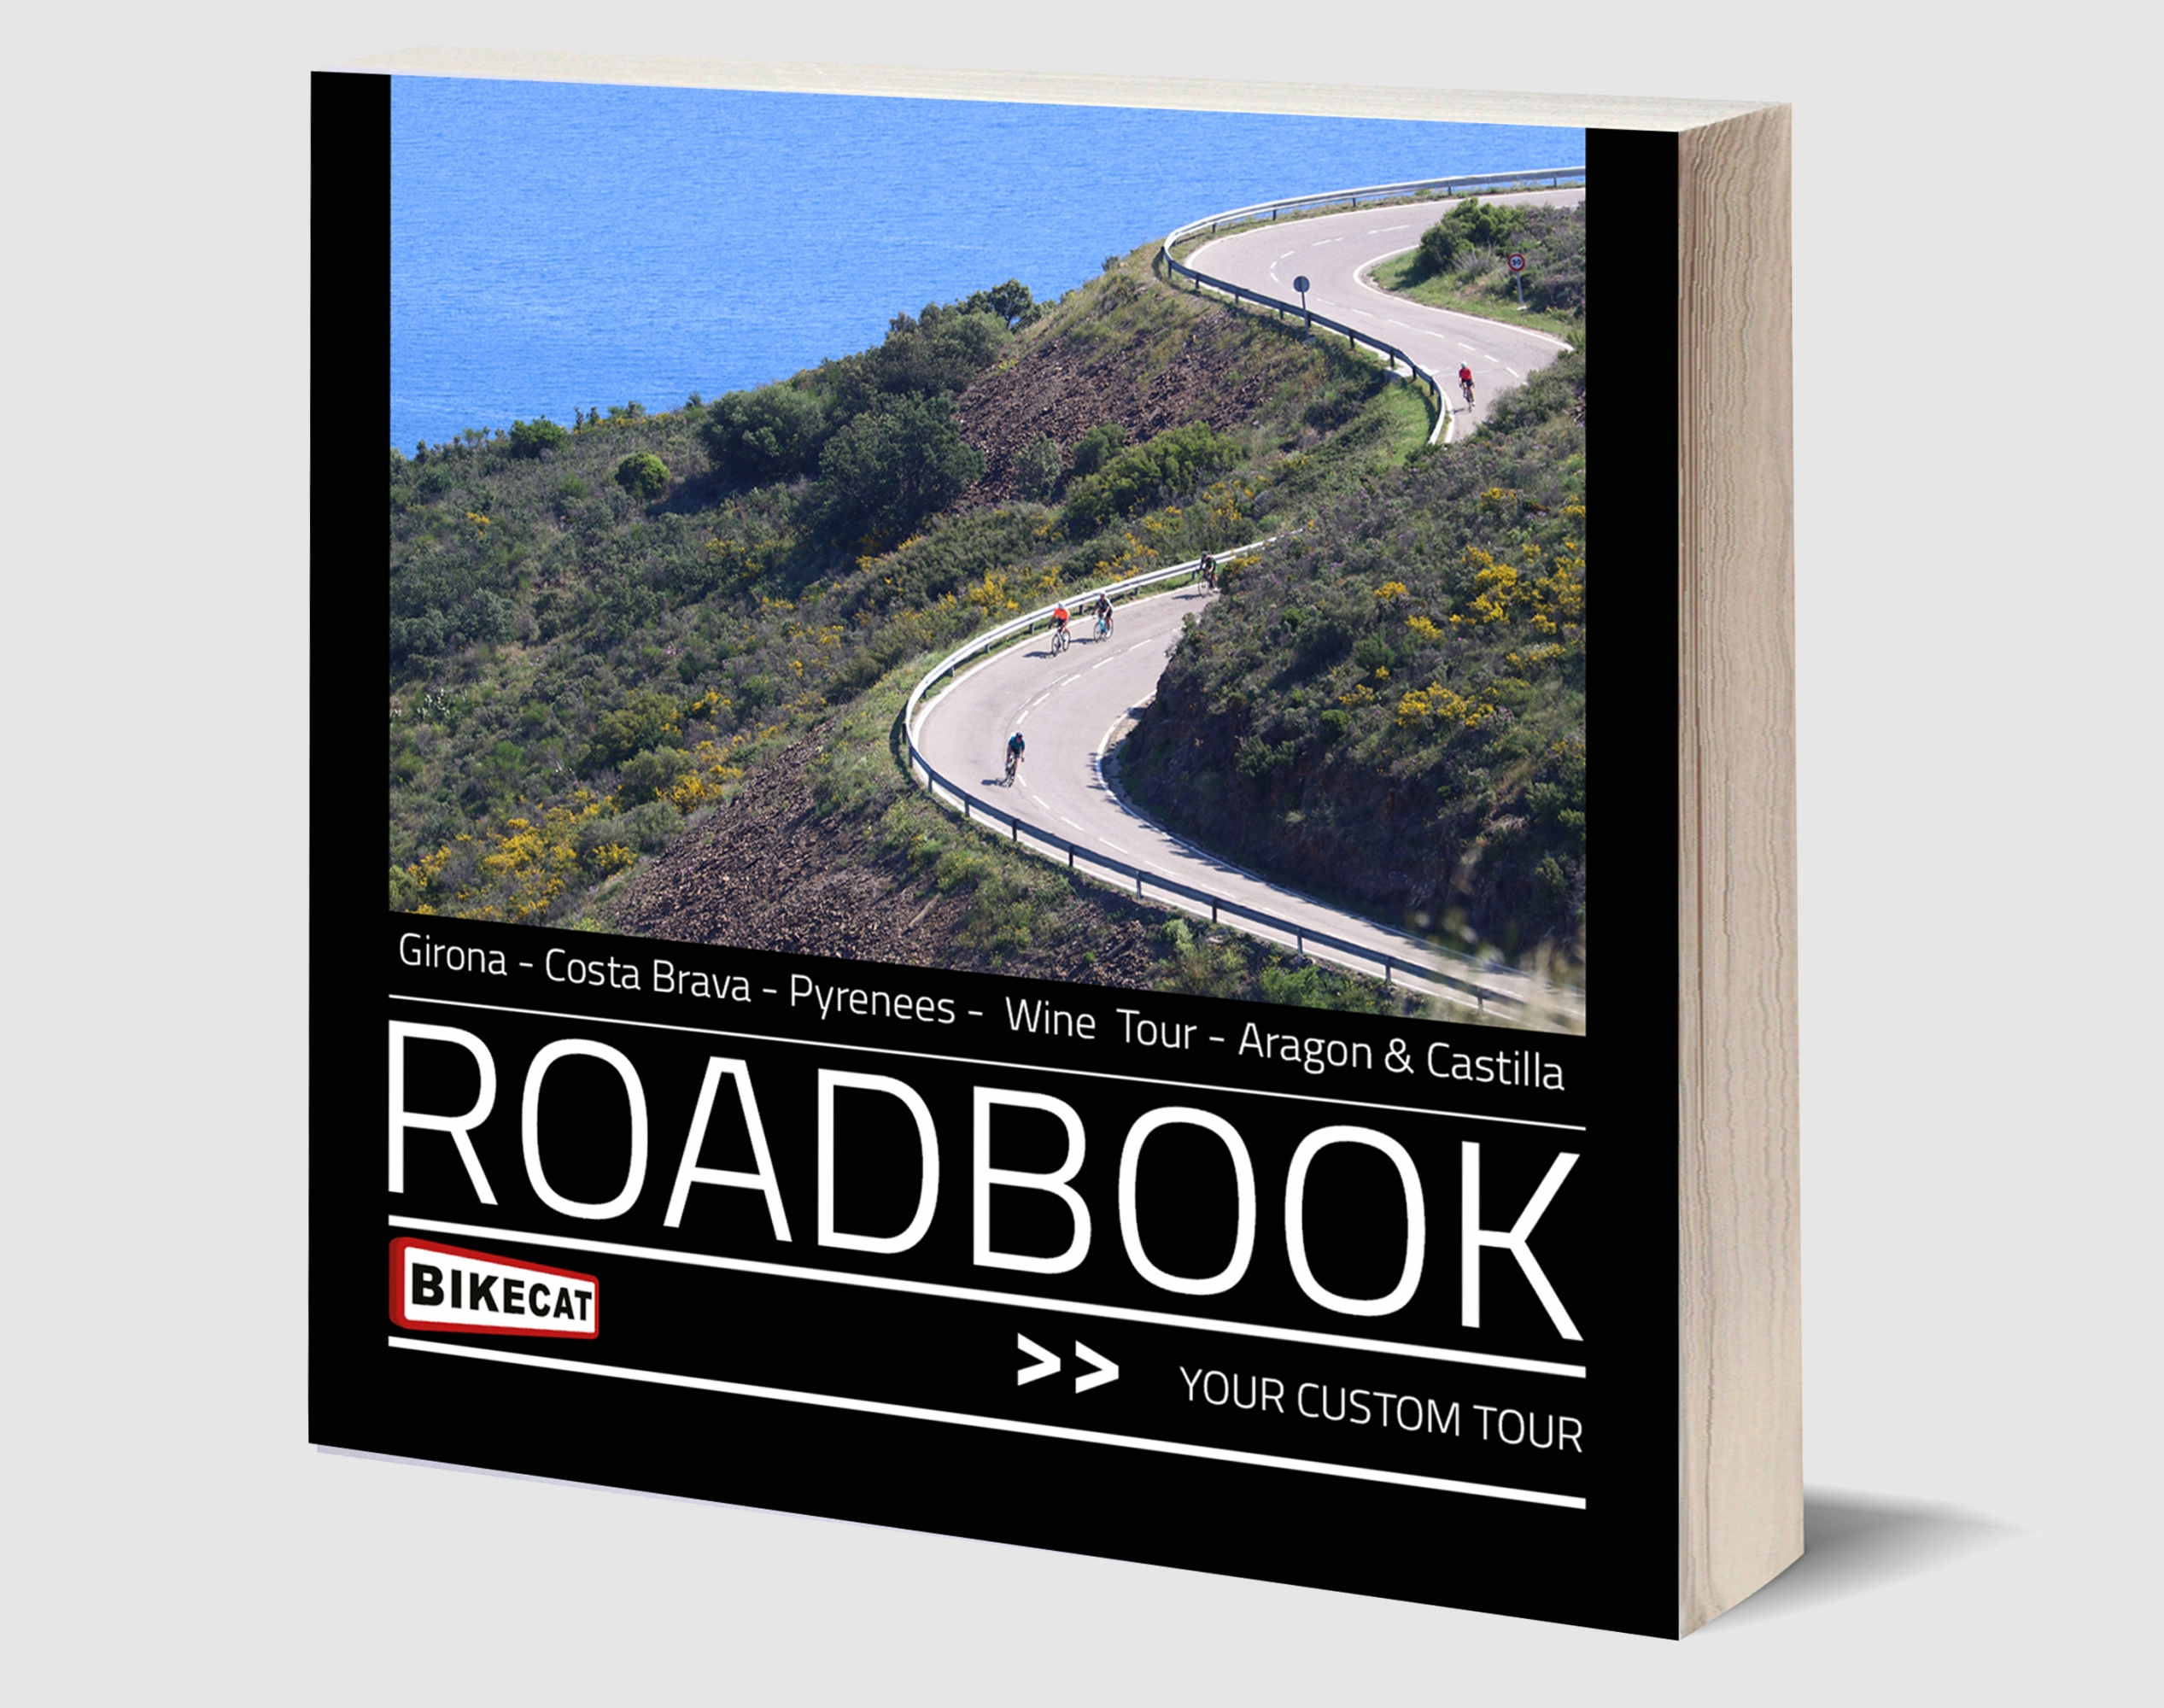 Your Custom Tour RoadBook